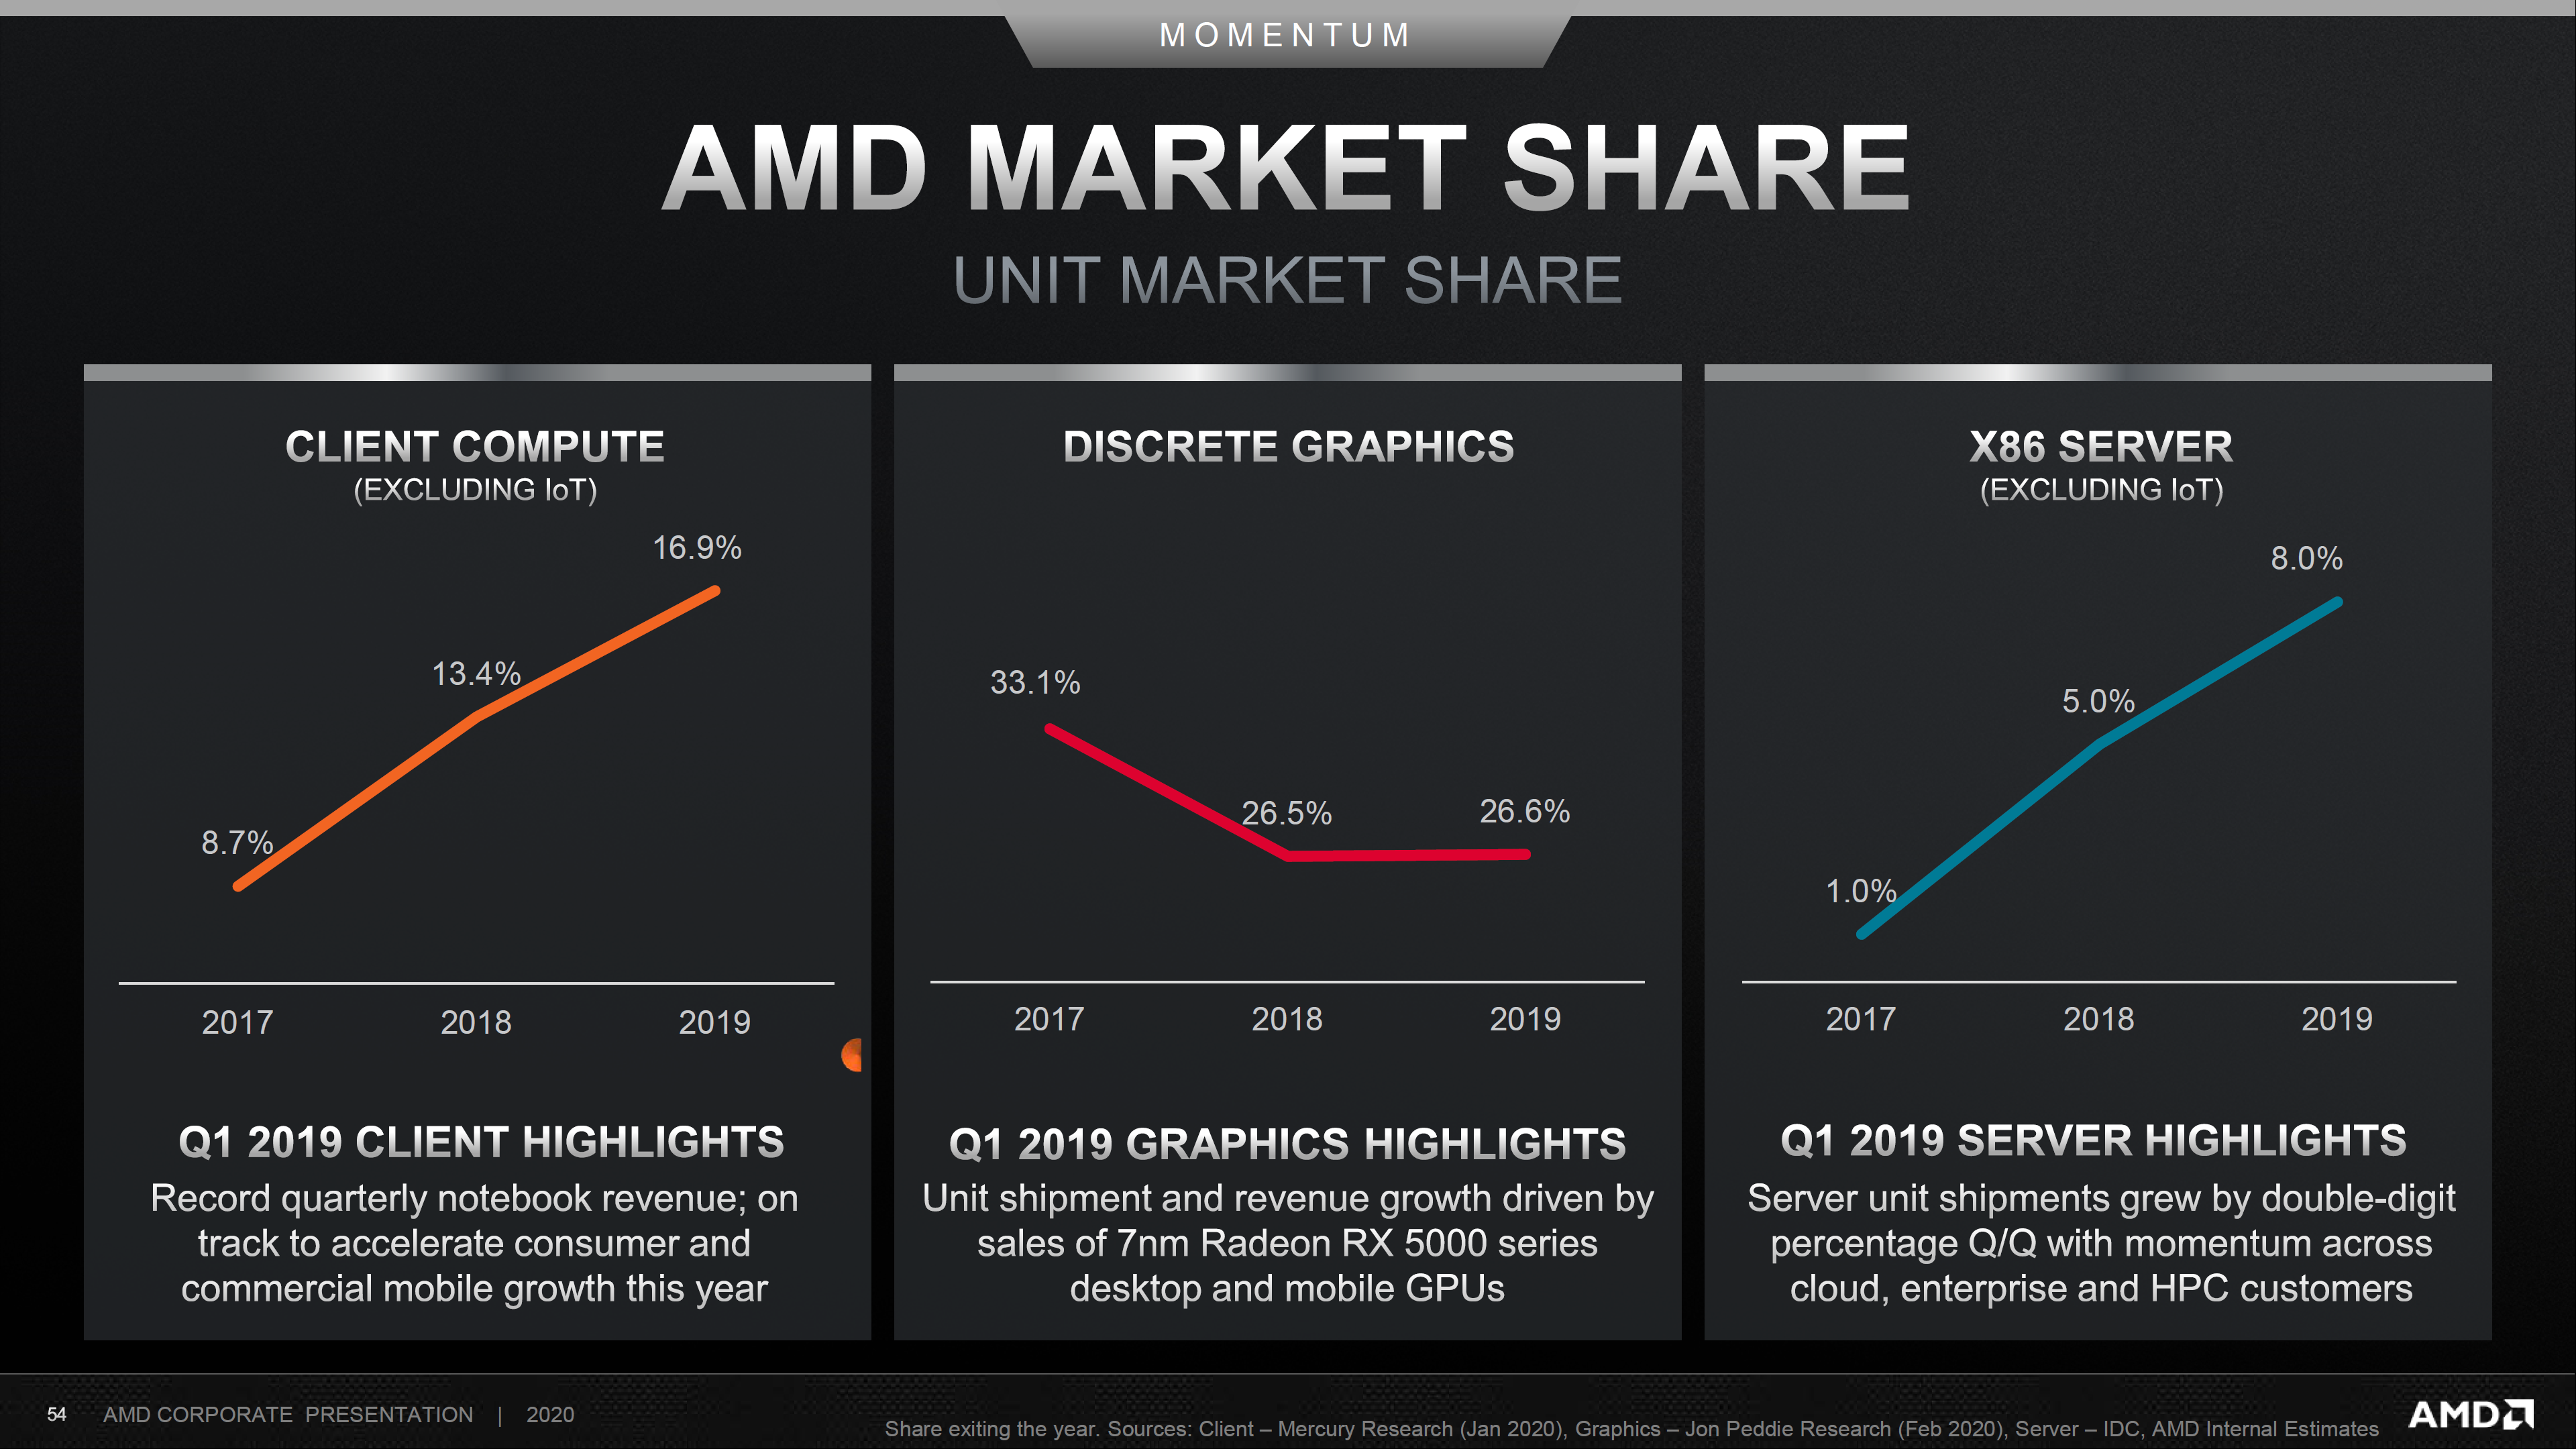 Amd Shows Explosive Market Share Growth In Server Notebook Segments During 2019 With Epyc Ryzen Cpus